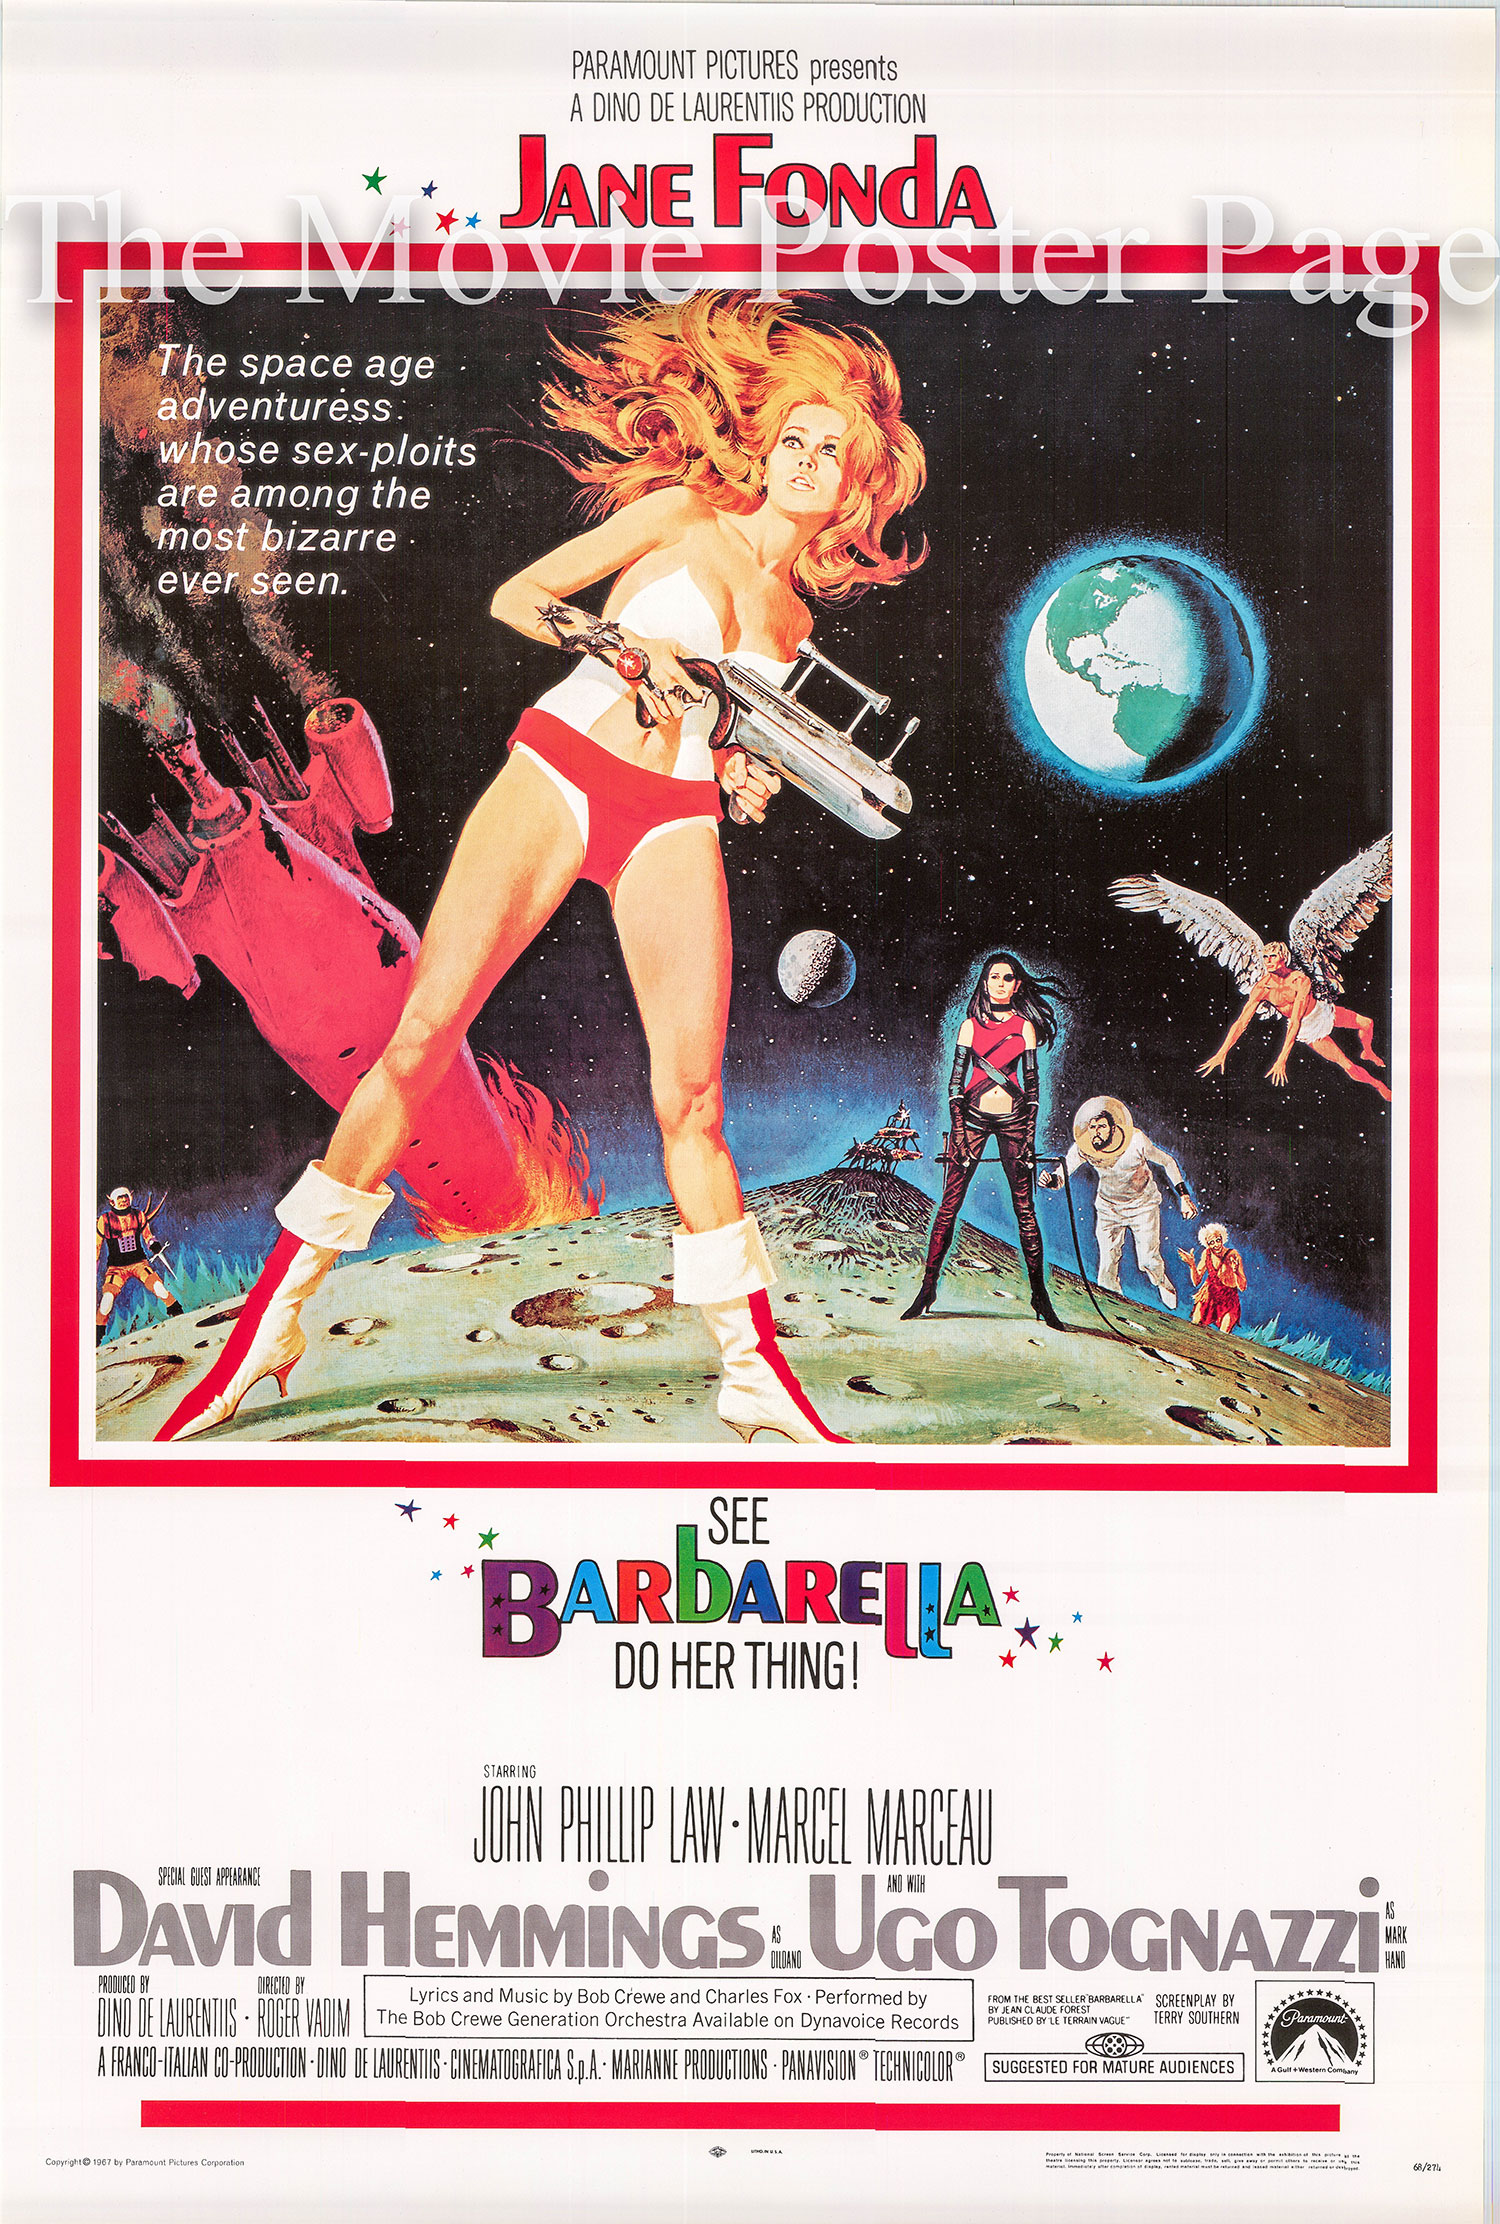 Pictured is a reprint of a US one-sheet promotional poster for the 1968 Roger Vadim film Barbarella starring Jane Fonda.